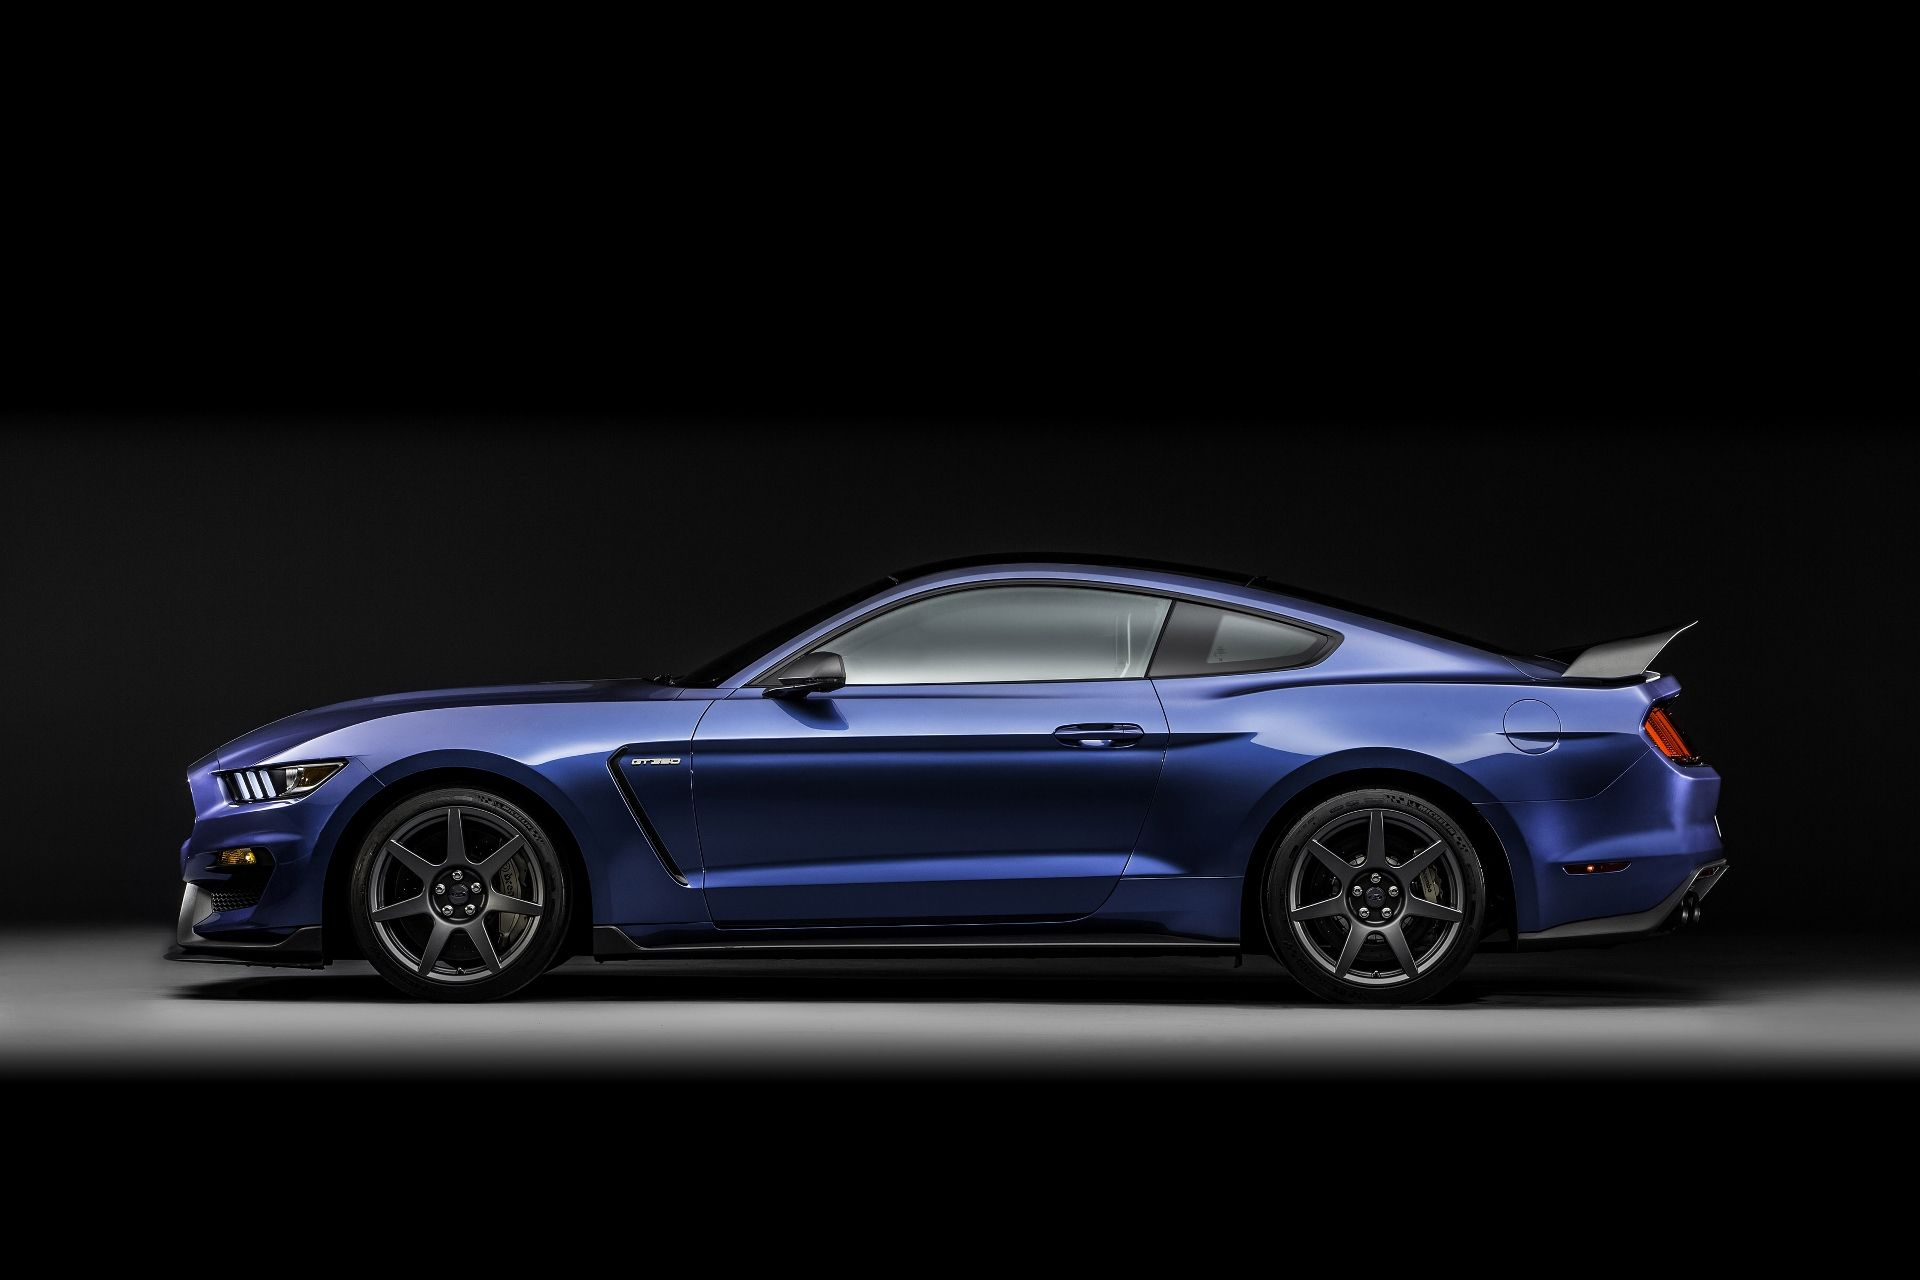 2016 Ford Mustang Shelby GT350R first drive review